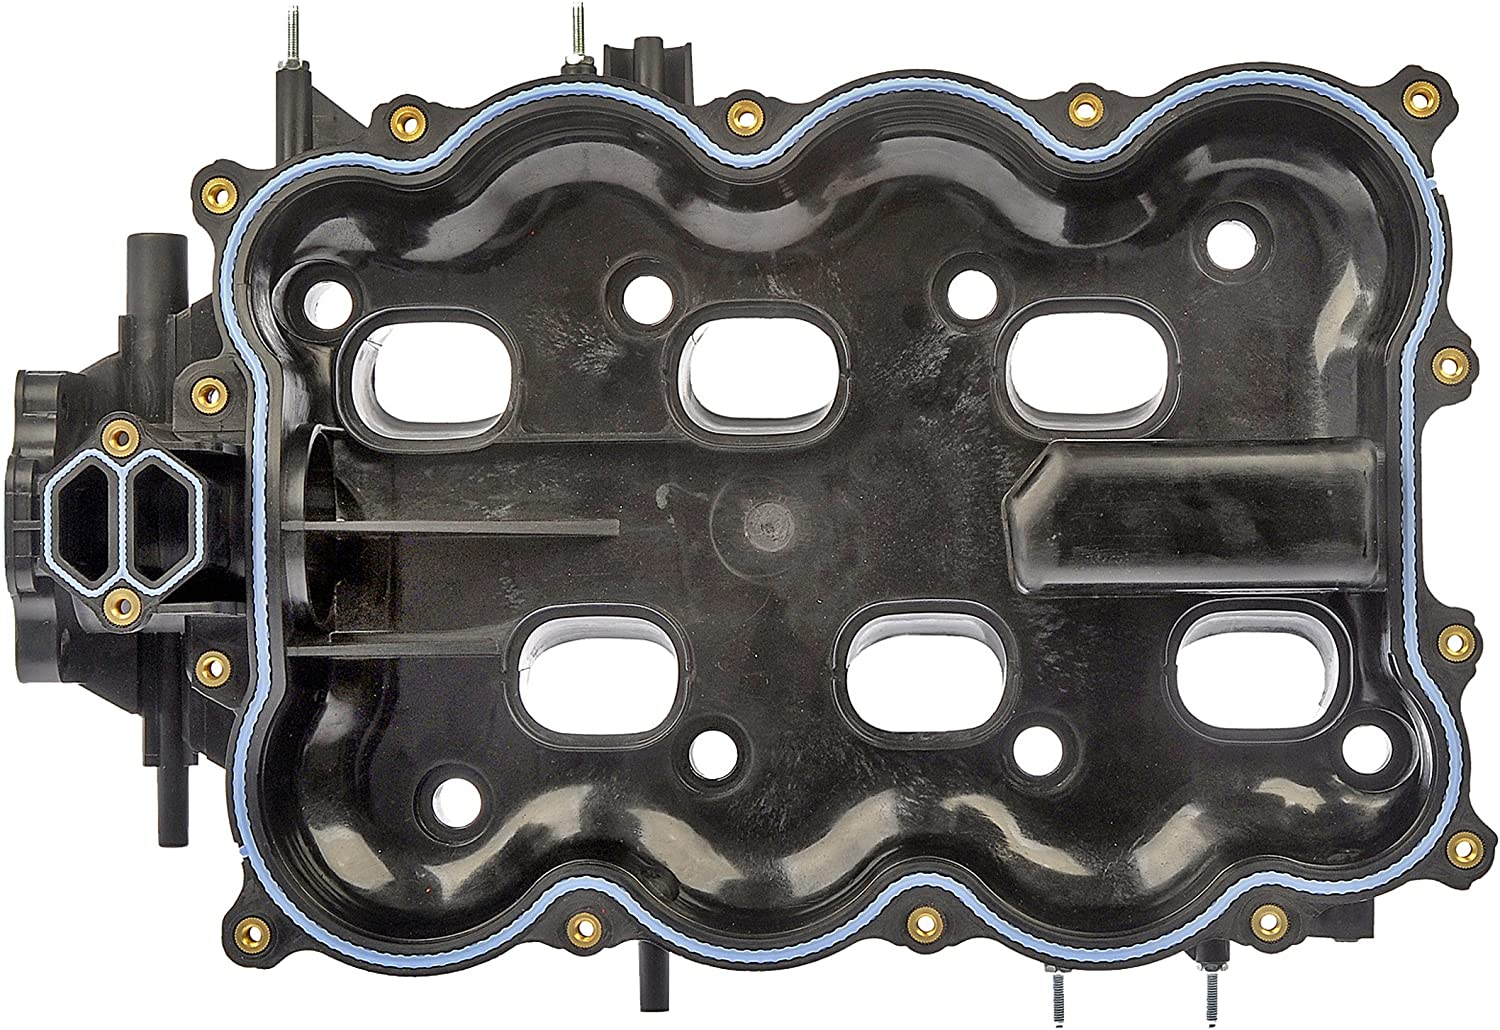 Dorman 615-377 Center Plastic Intake Manifold Includes Gaskets for Select Ford Models